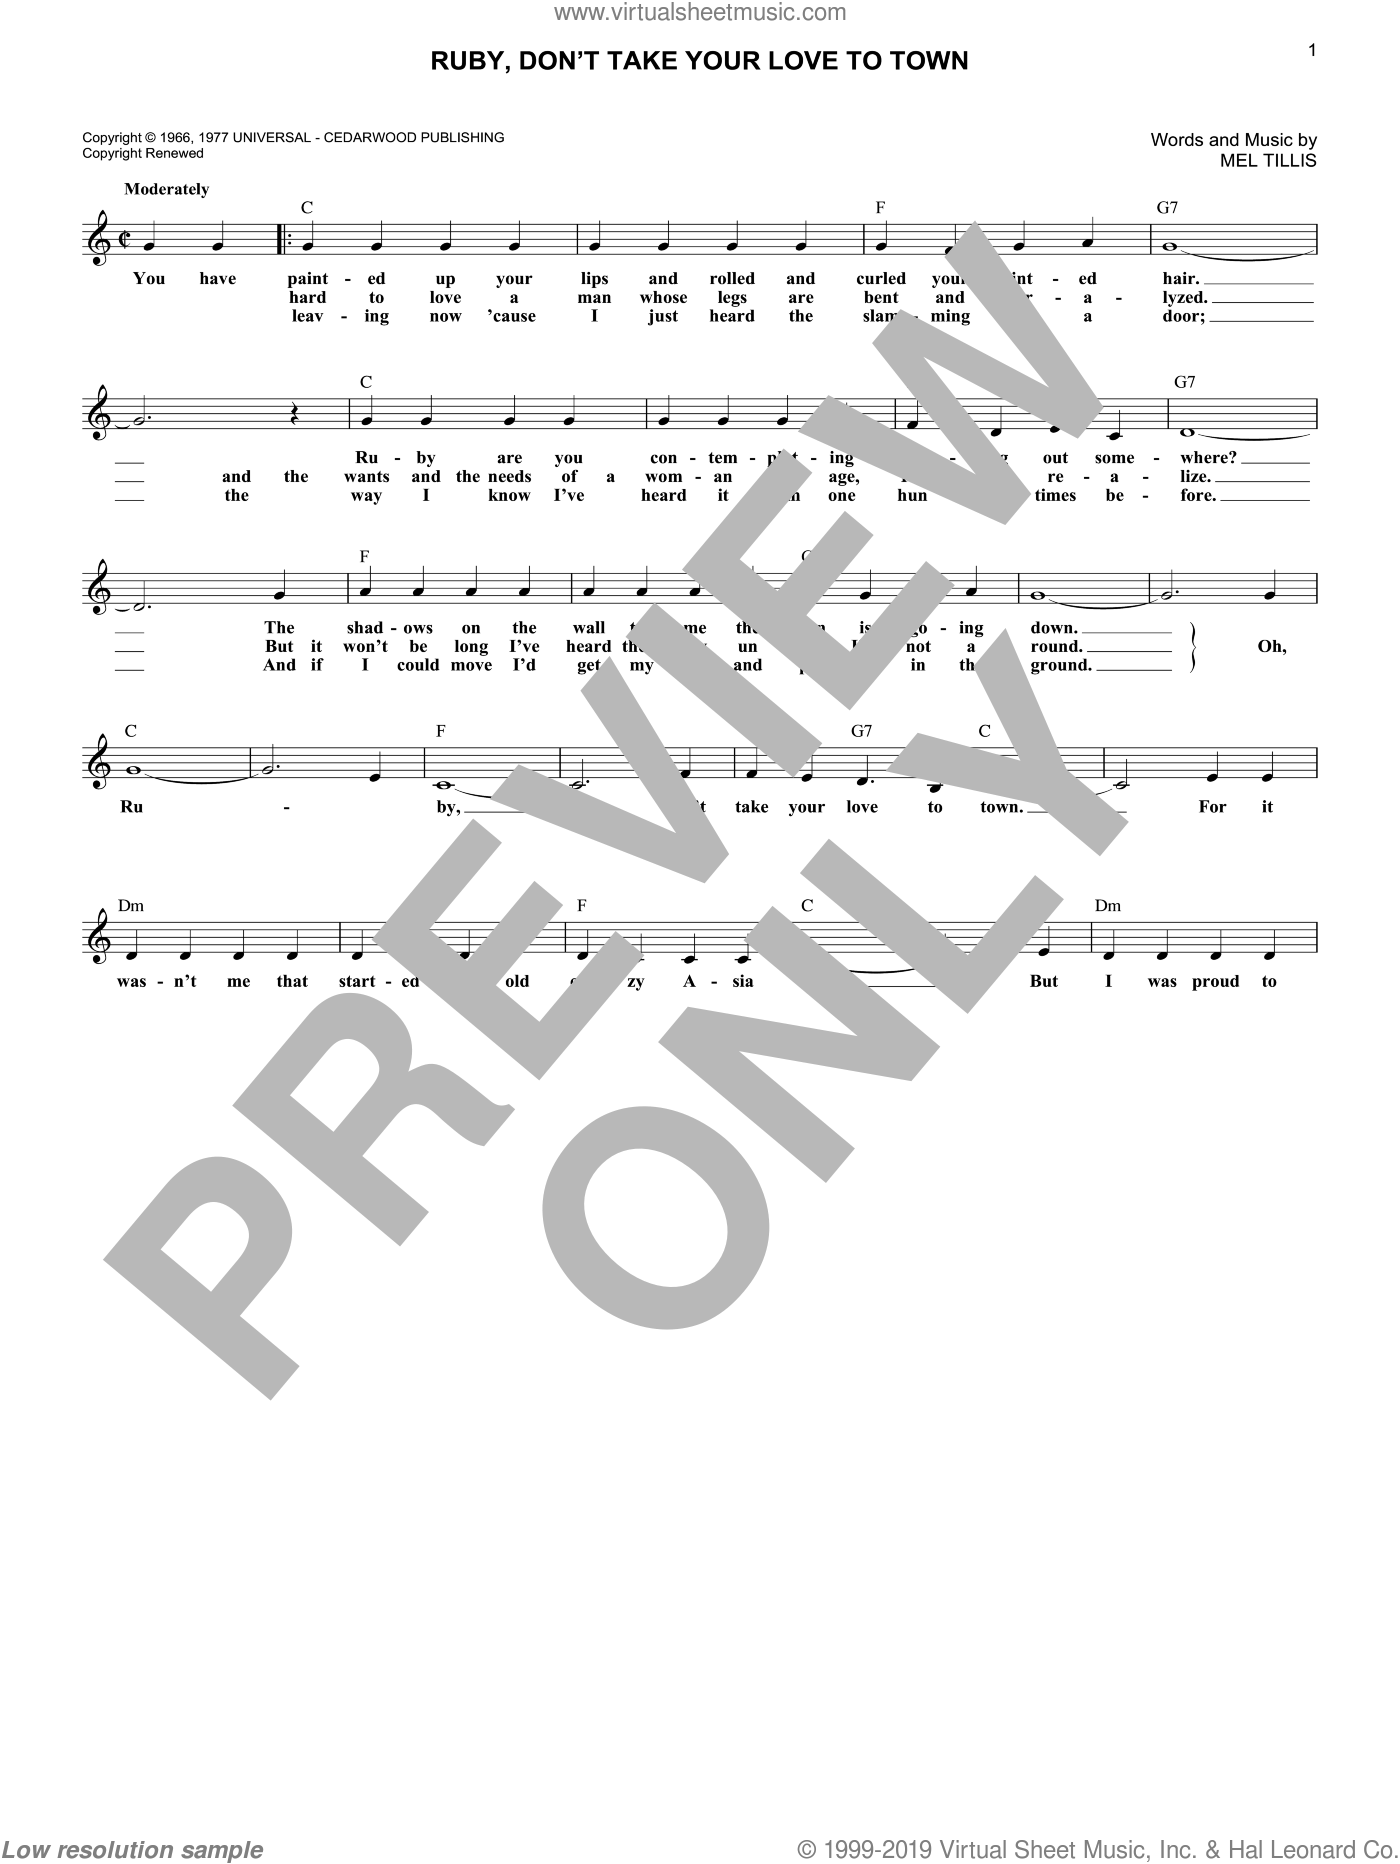 Ruby, Don't Take Your Love To Town sheet music for voice and other instruments (fake book) by Kenny Rogers and Mel Tillis, intermediate skill level